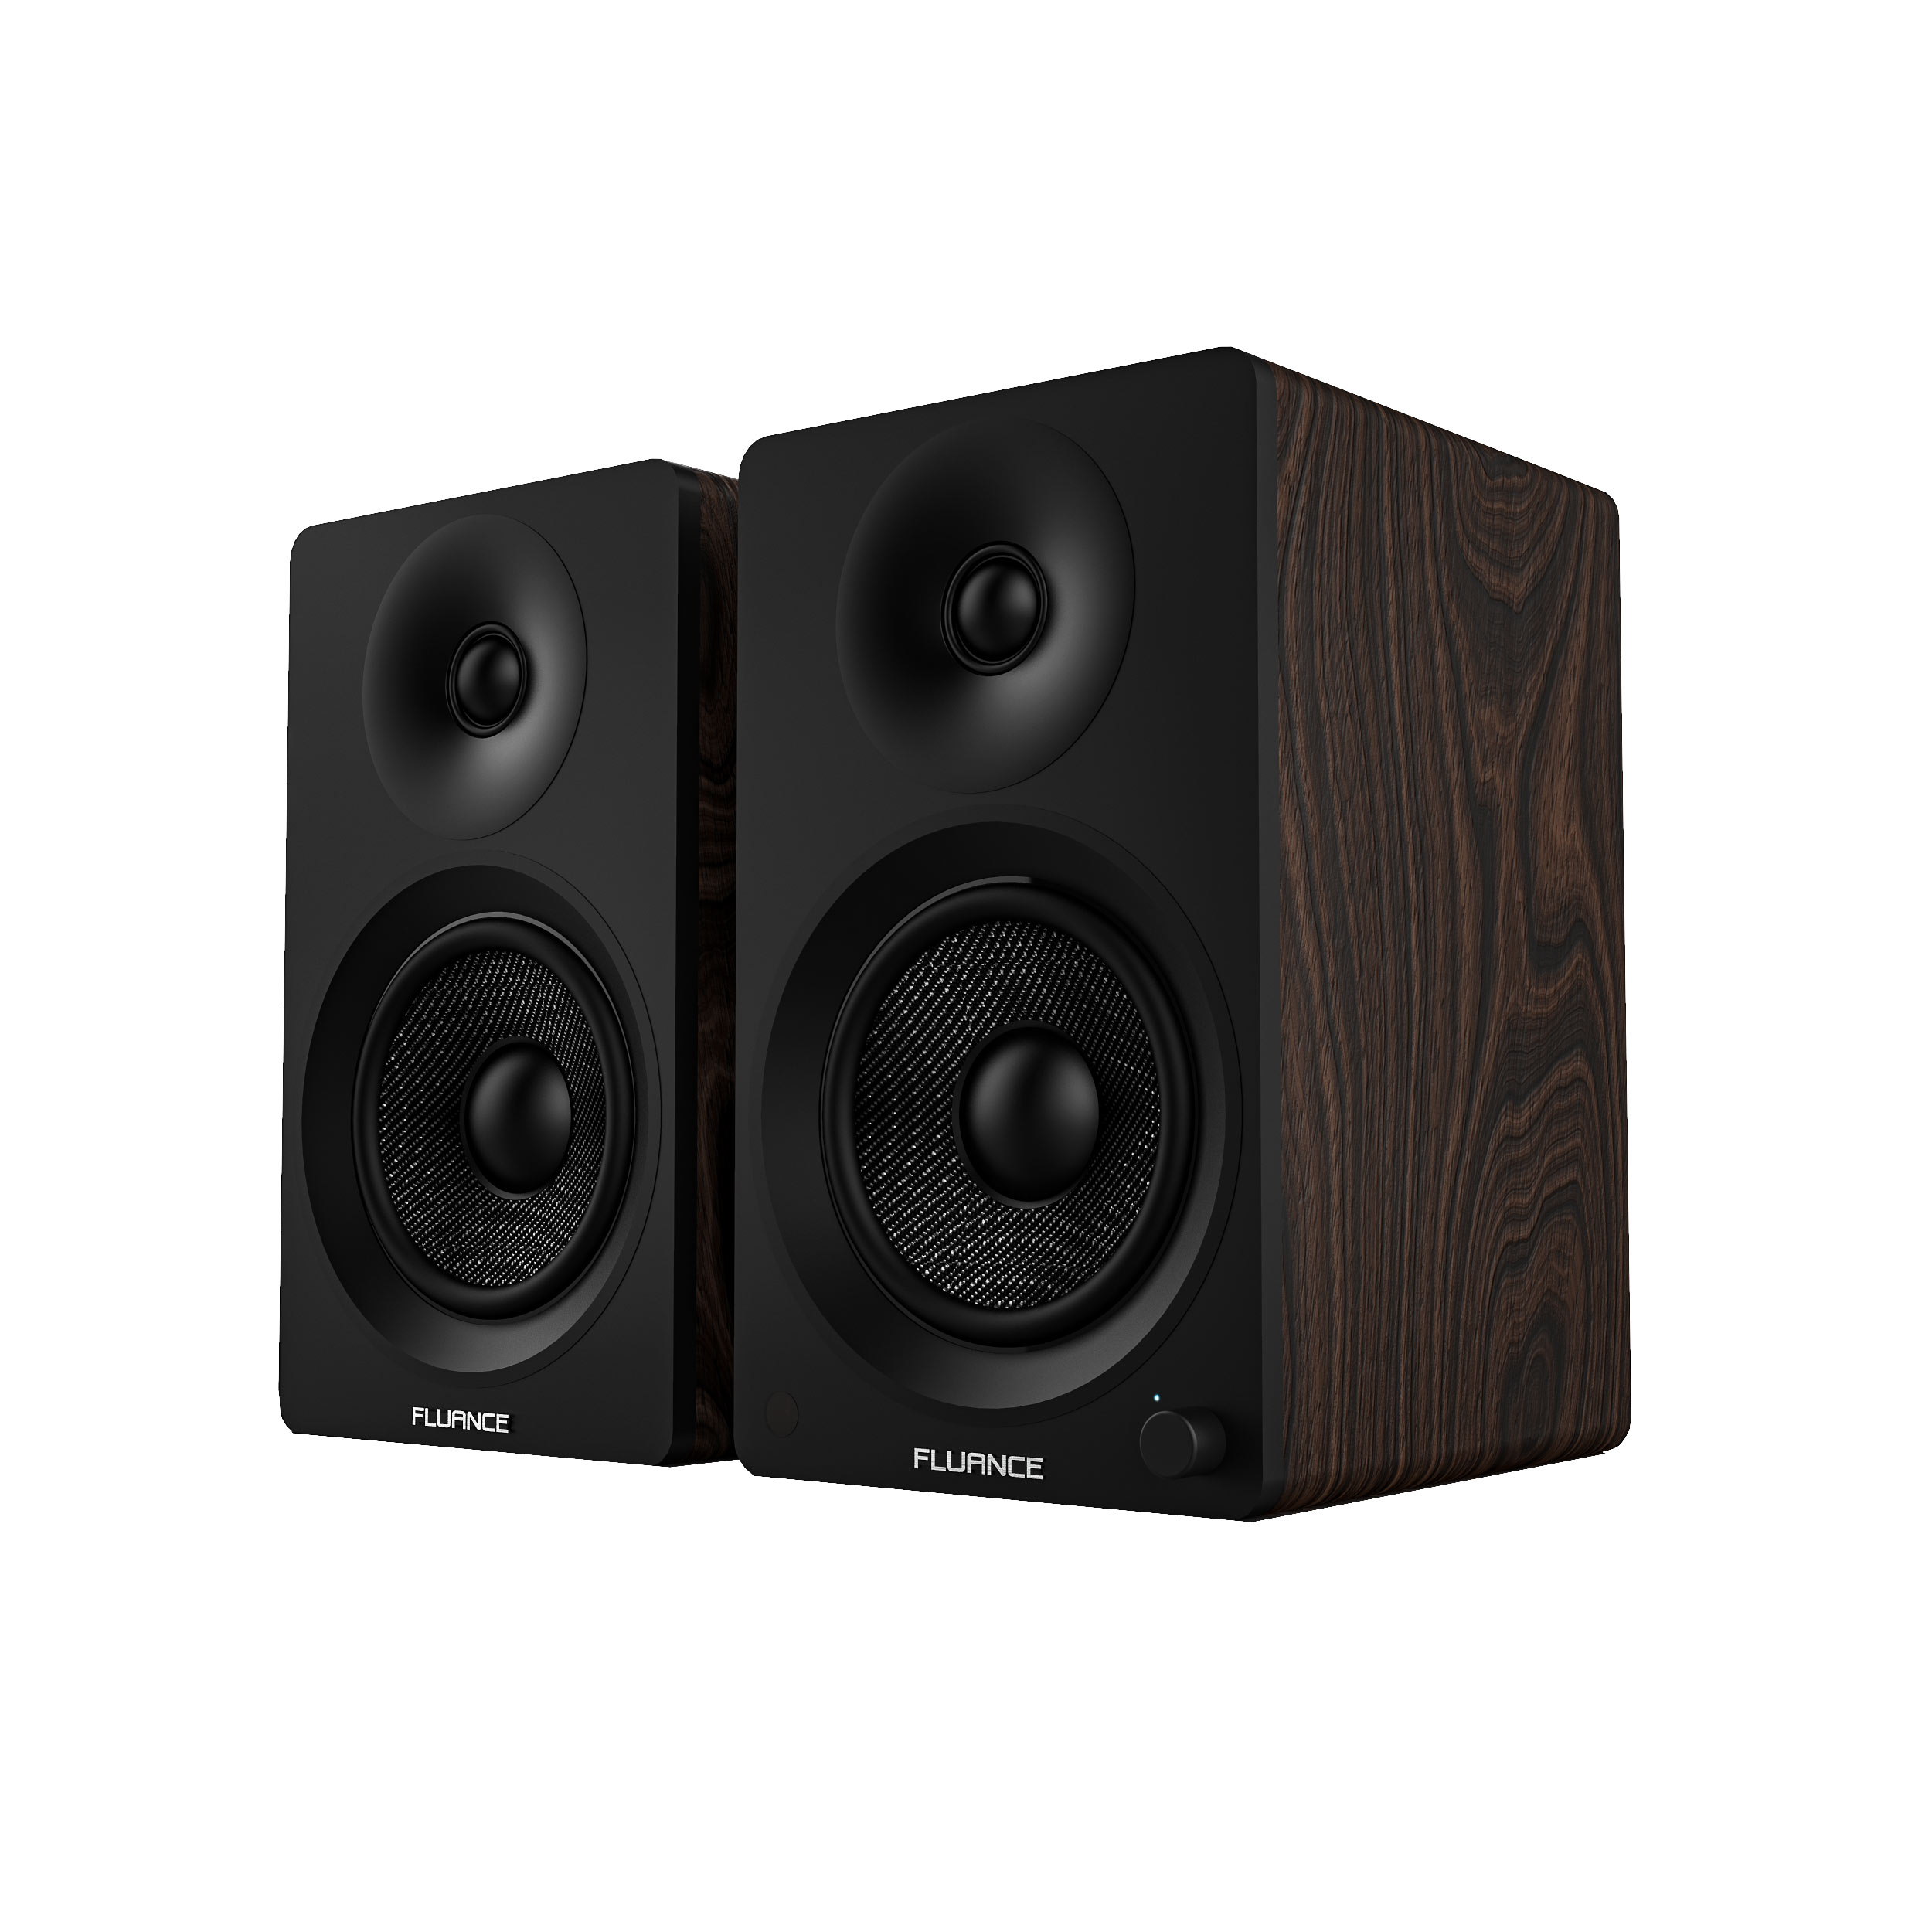 Fluance Ai40B Powered Two Way 5 20 Bookshelf Speakers With 70W Class D Amplifier For Turntable PC HDTV Bluetooth AptX Wireless Music Streaming